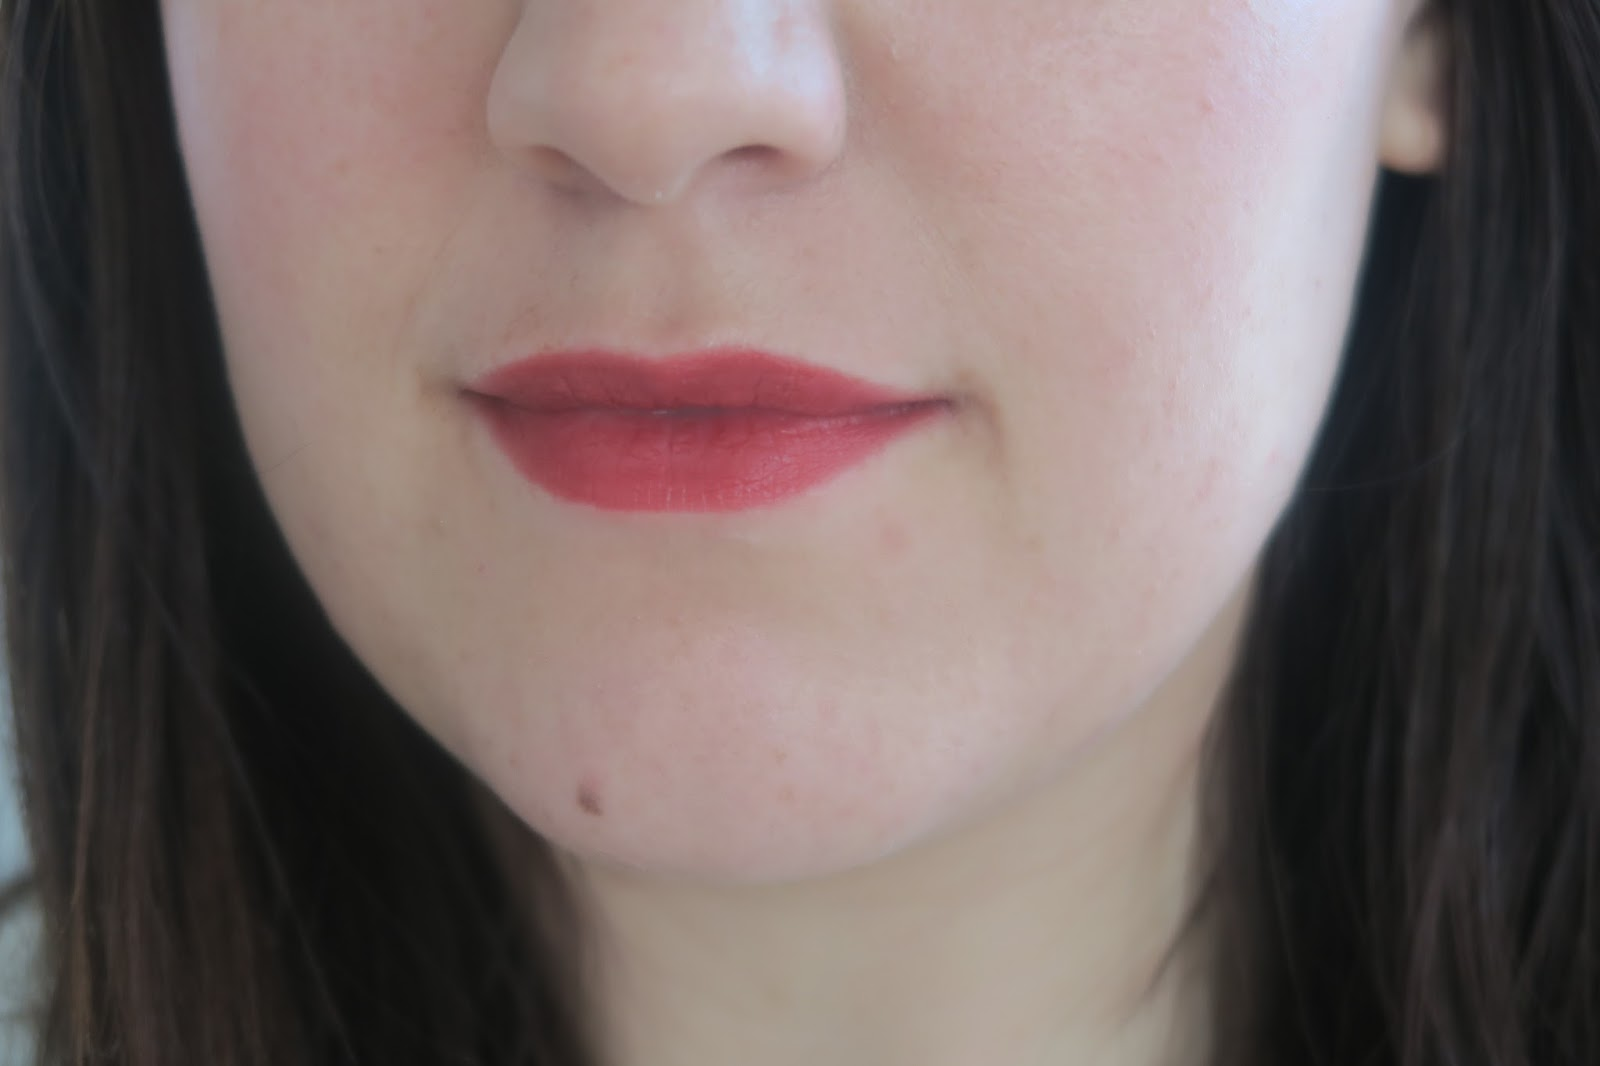 Living Nature Pure Passion Organic Lipstick Review & Swatch